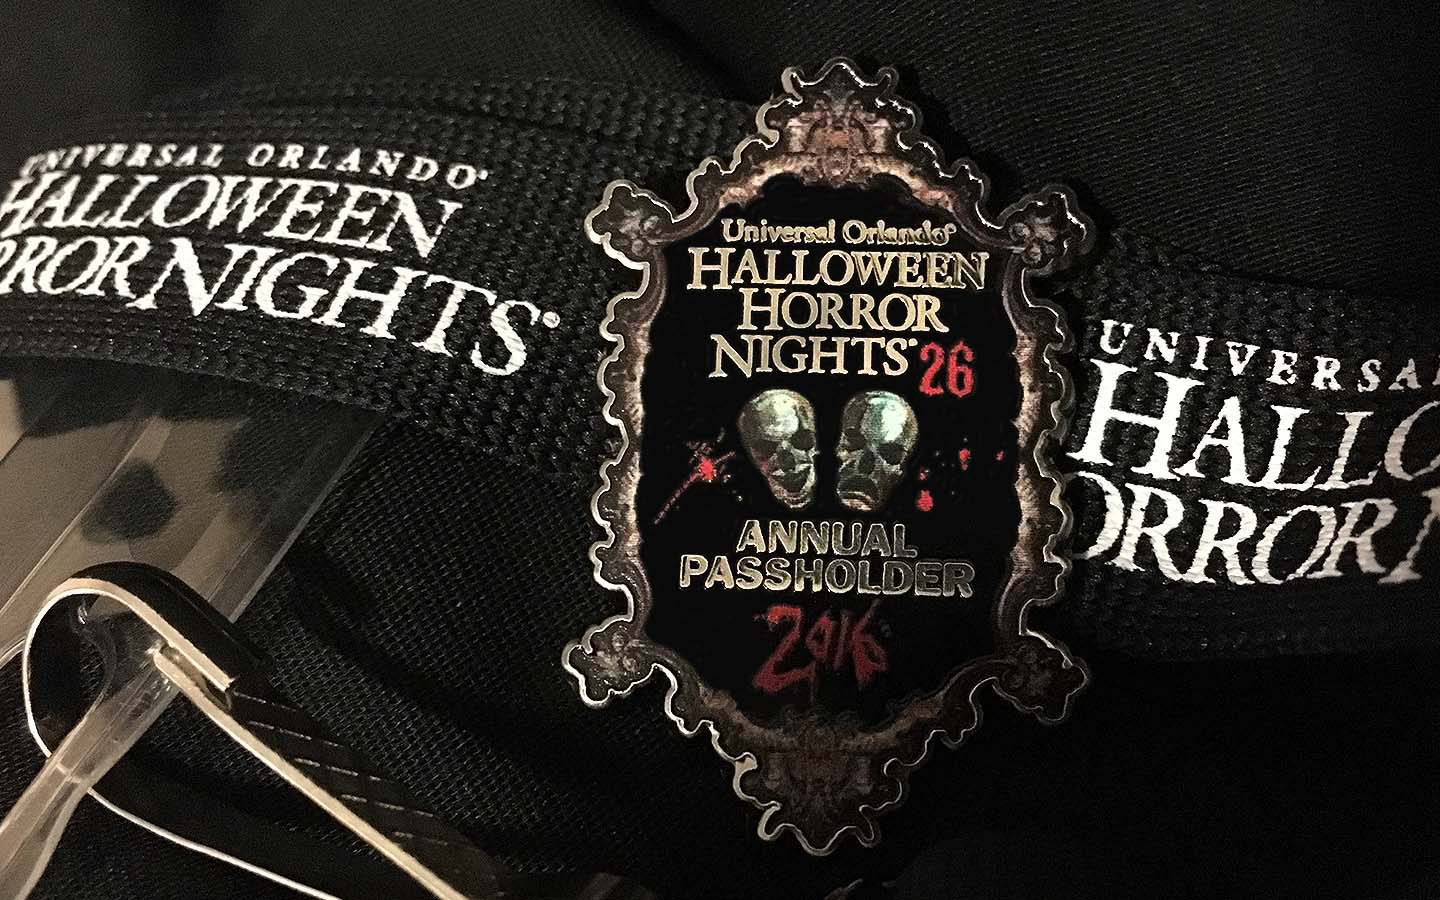 Halloween Horror Nights Discount With Annual Pass